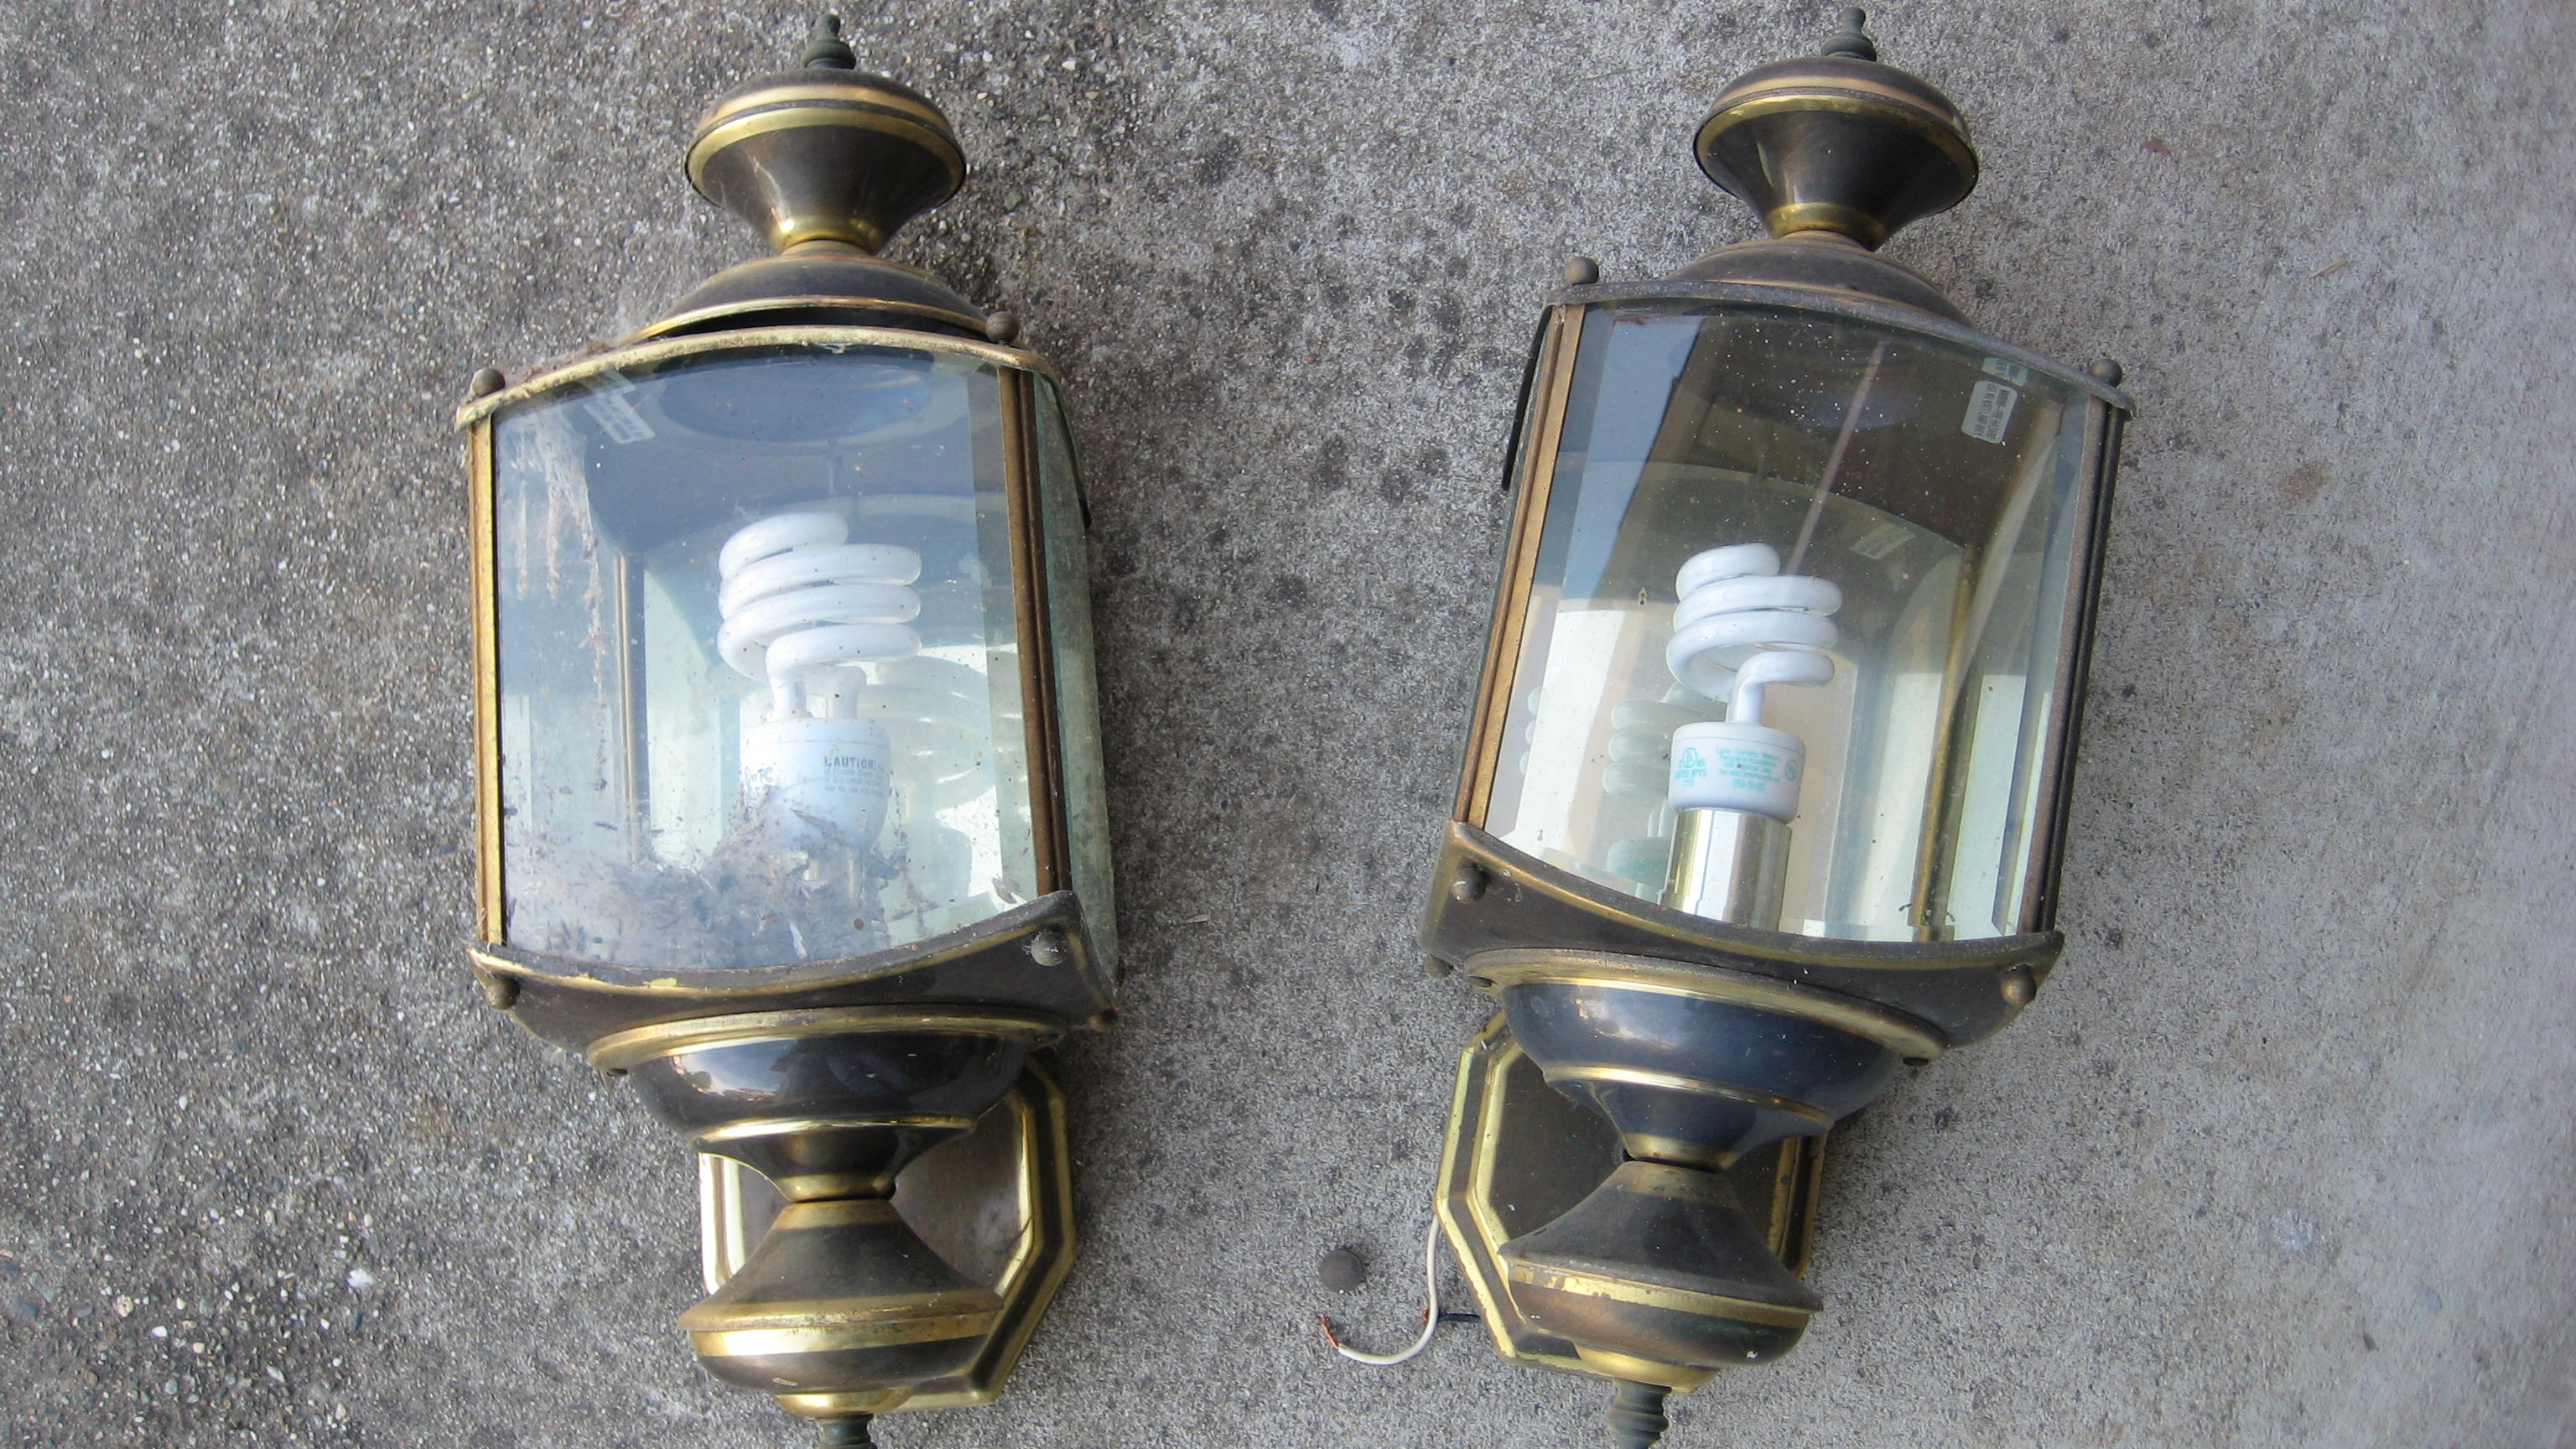 Salvage an Old Outside Light